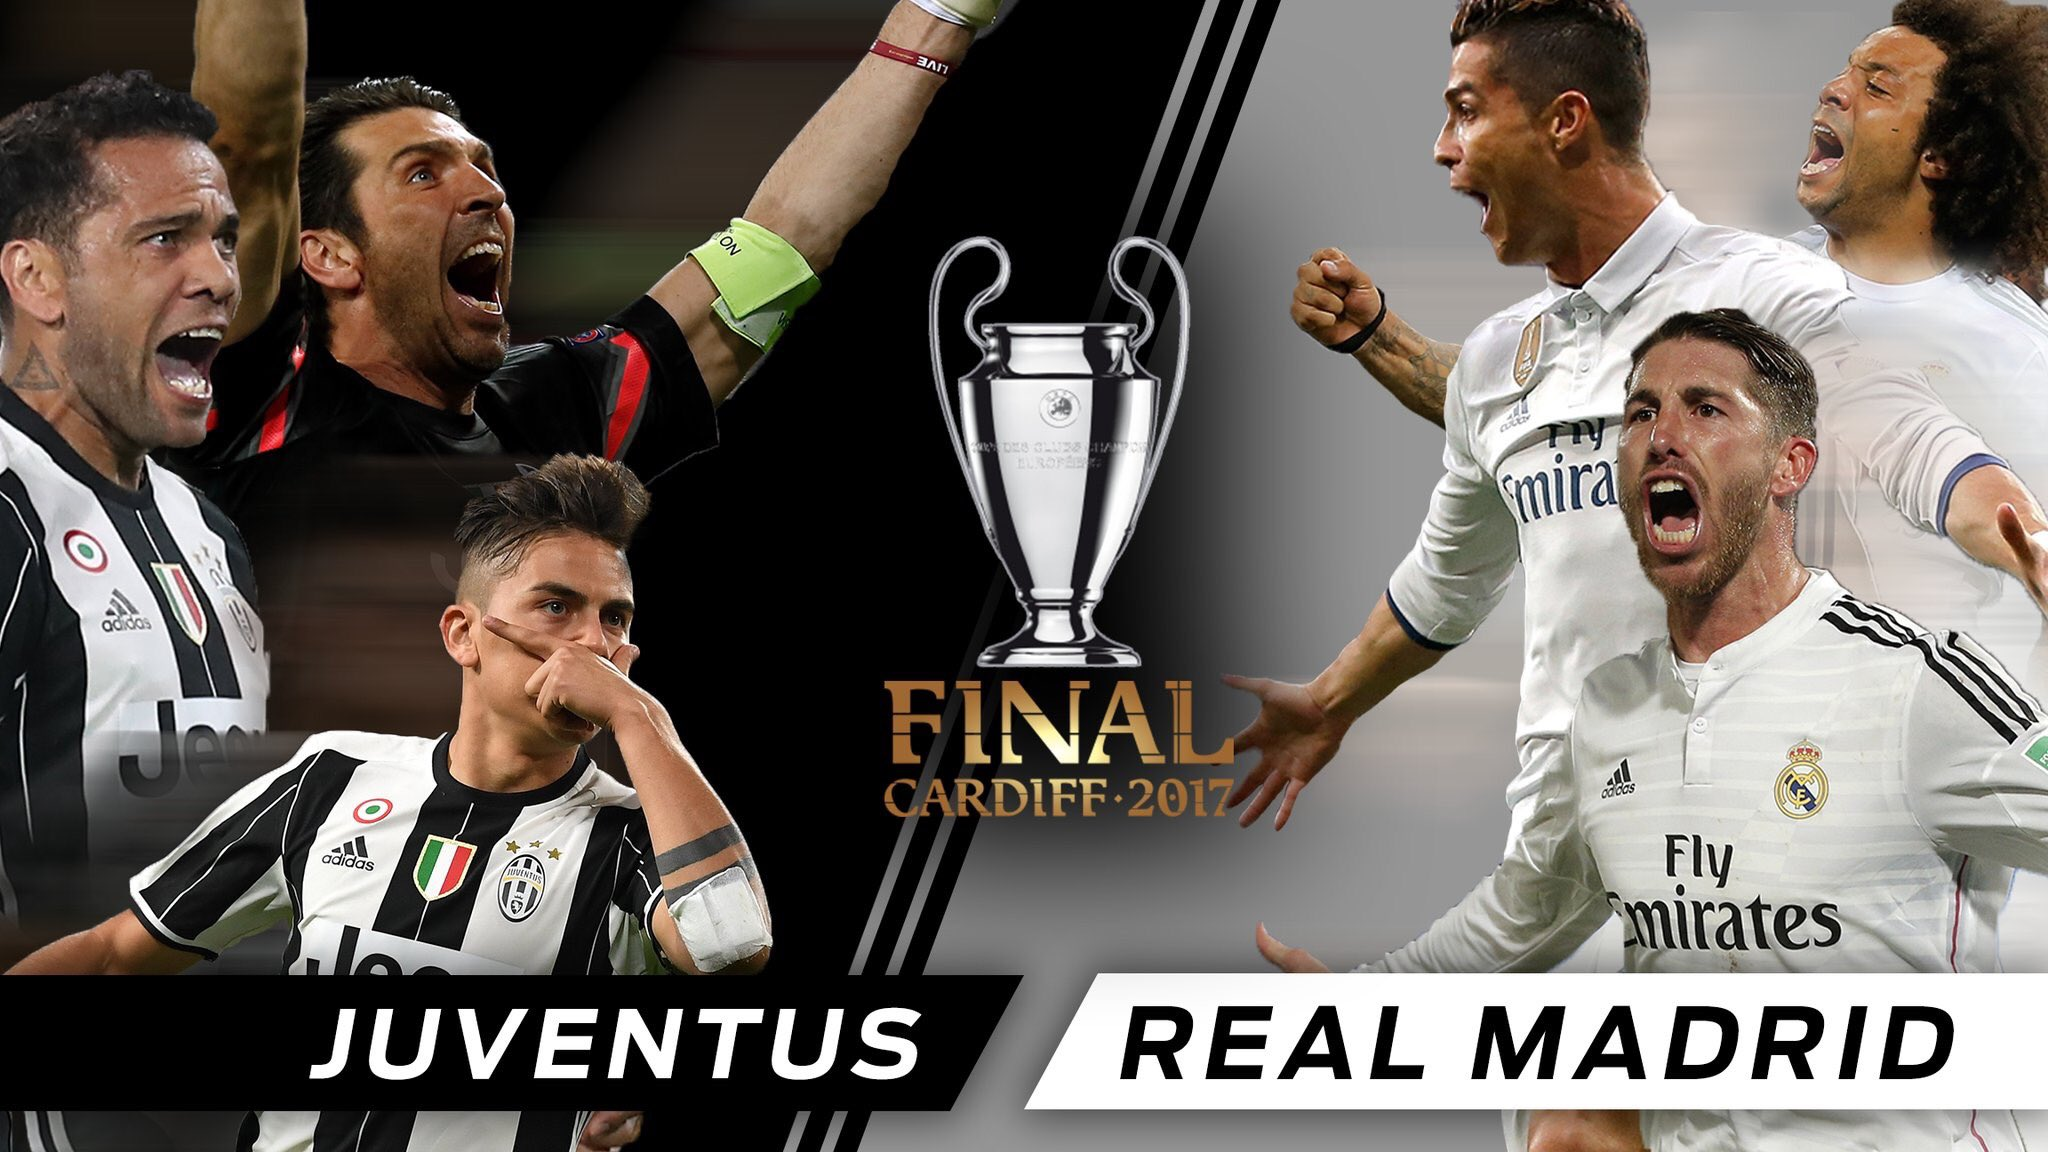 Chung kết champions league, champions league, Juventus vs Real Madrid, Juventus, Real Madrid